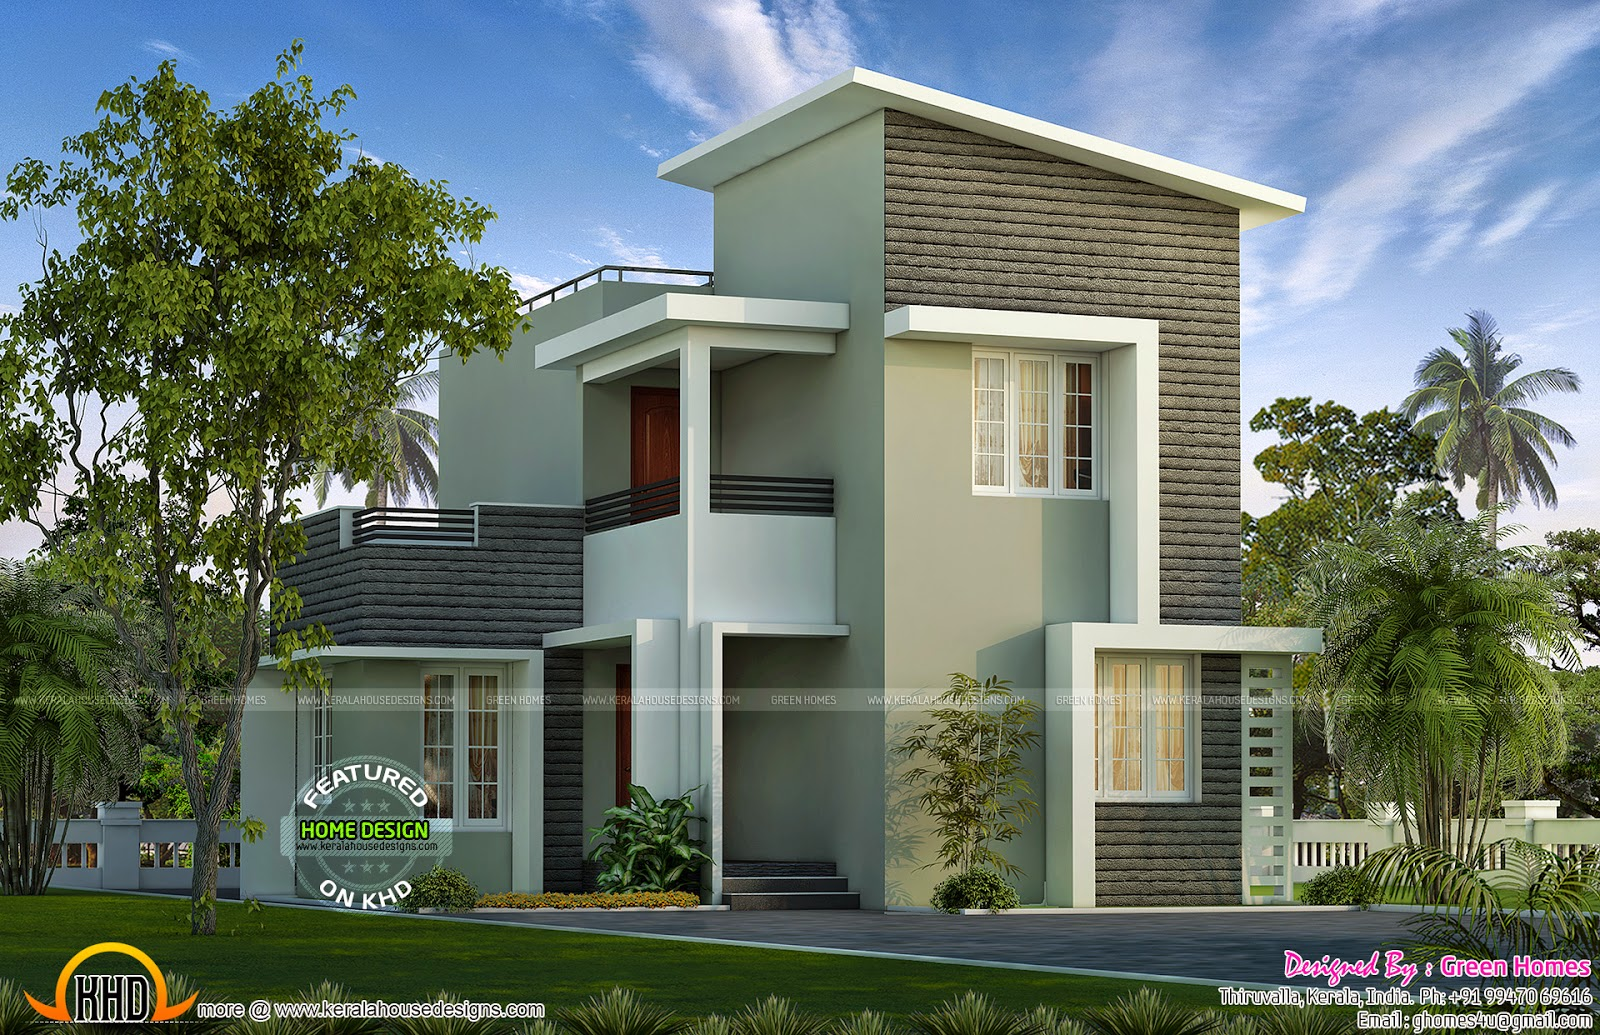 Small plot double storied house kerala home design and for Small home design ideas video